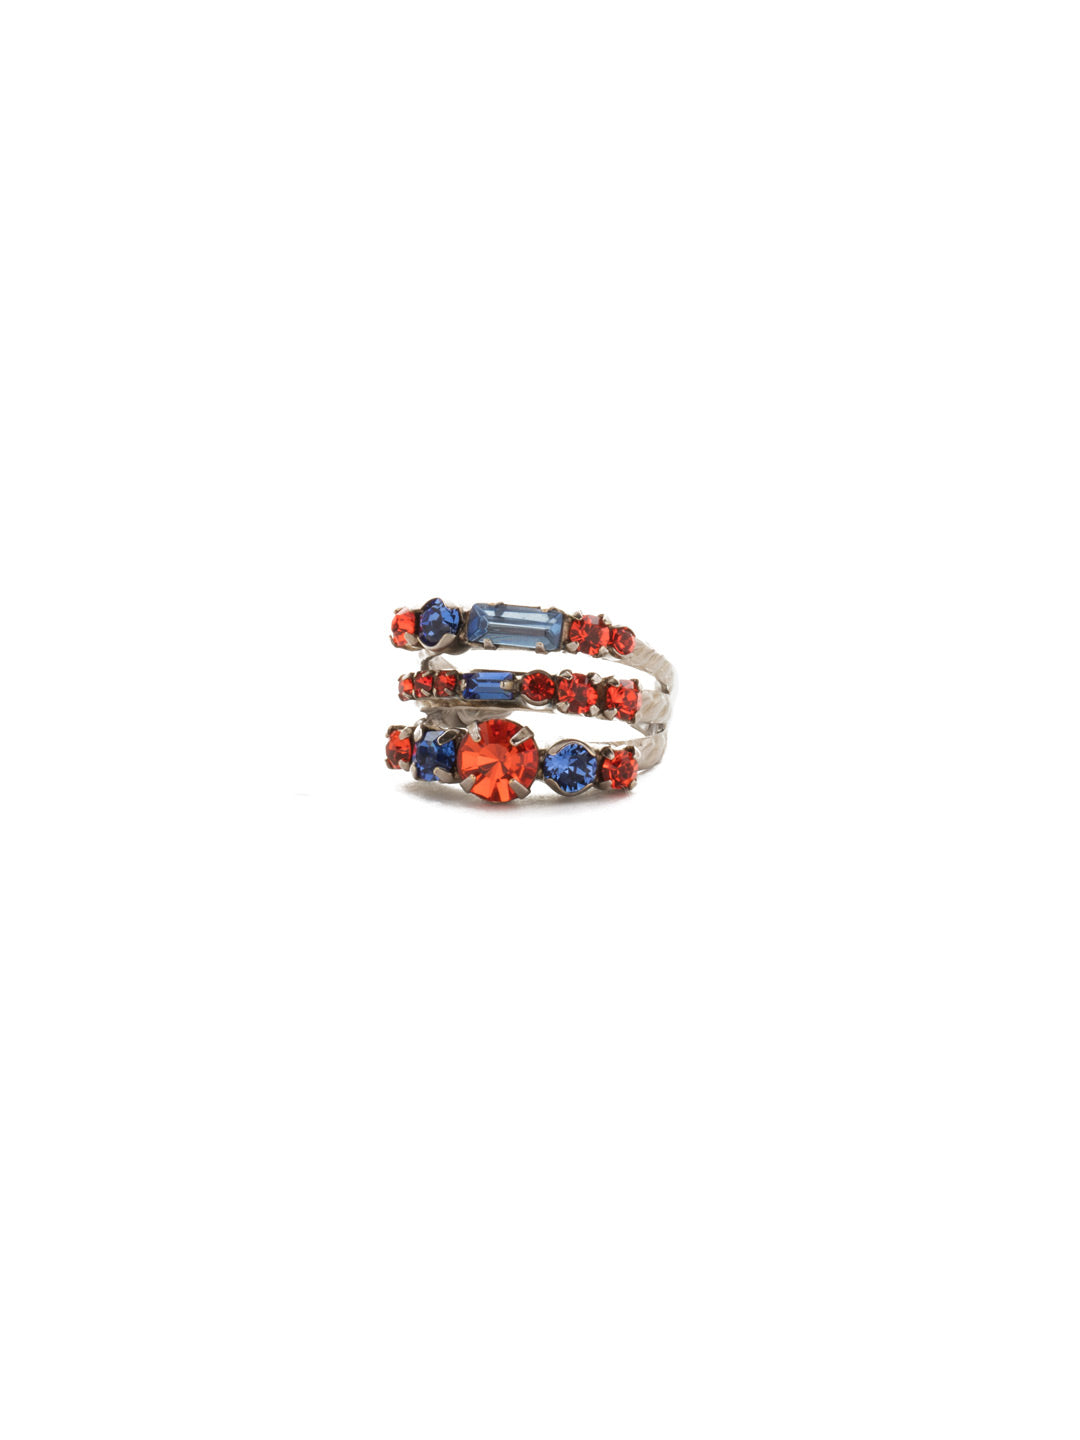 Triple Threat Stacked Ring - RDK23ASOCR